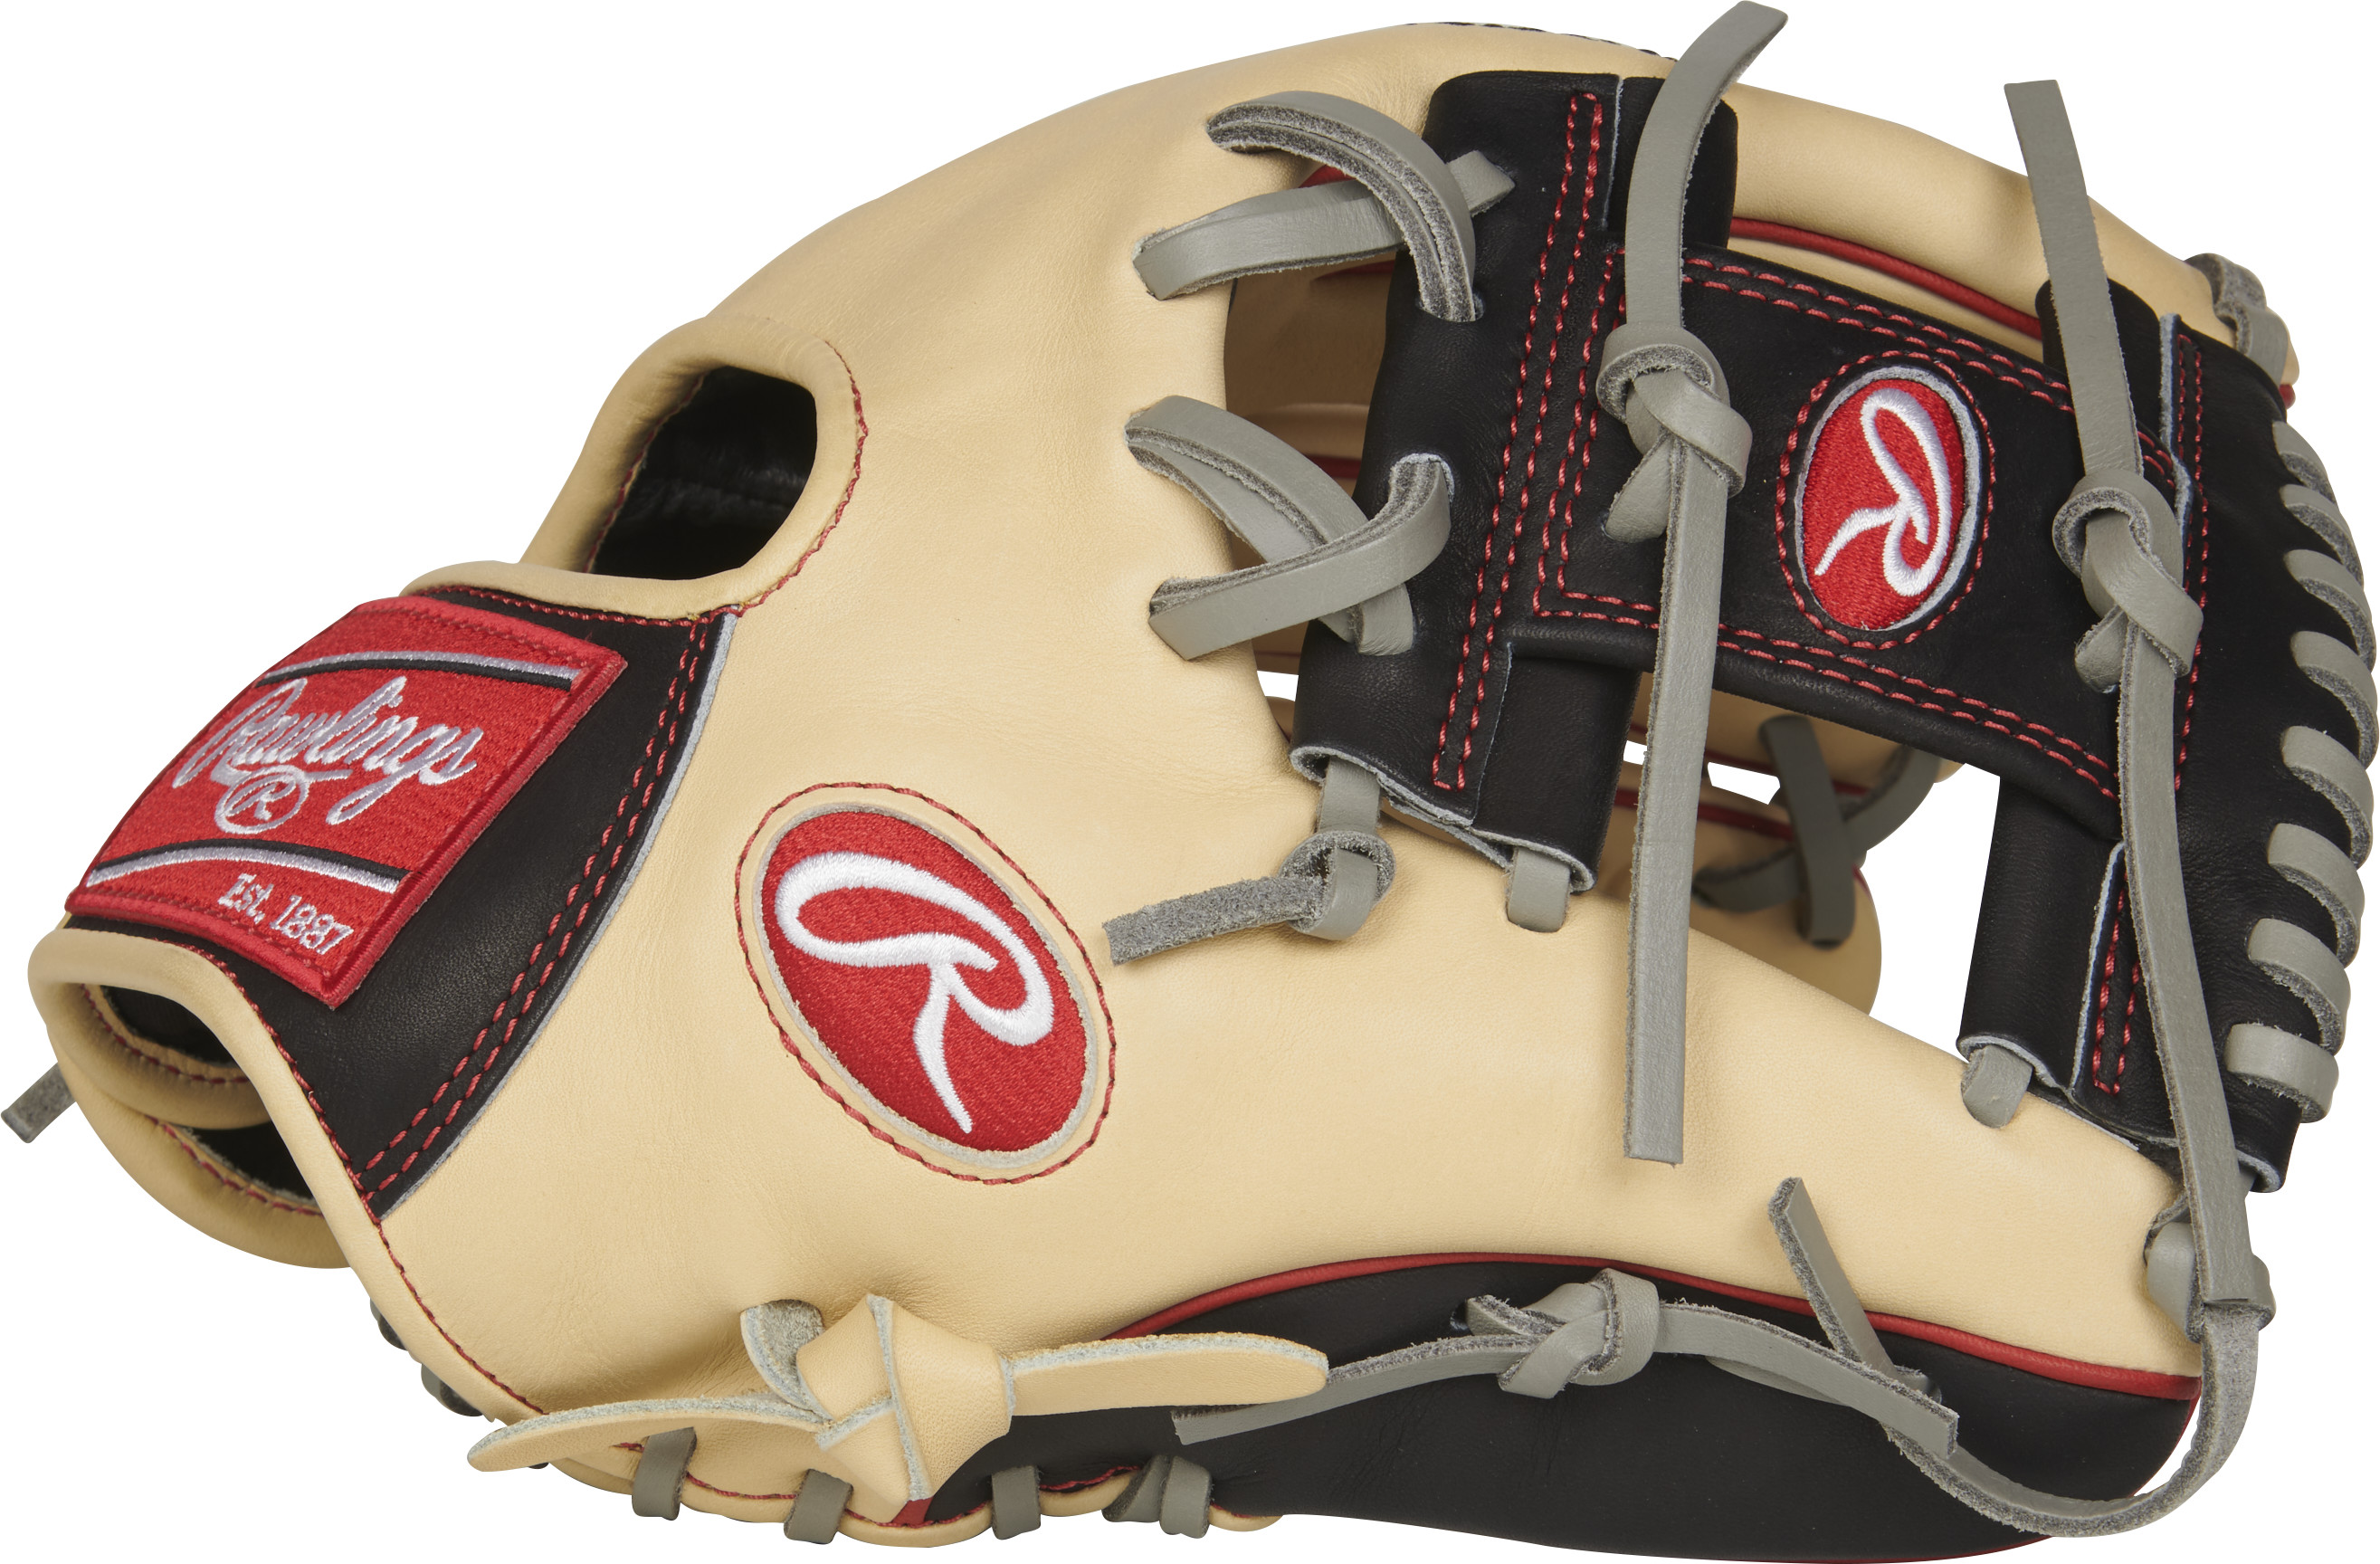 http://www.bestbatdeals.com/images/gloves/rawlings/PRO204-2CBG-3.jpg